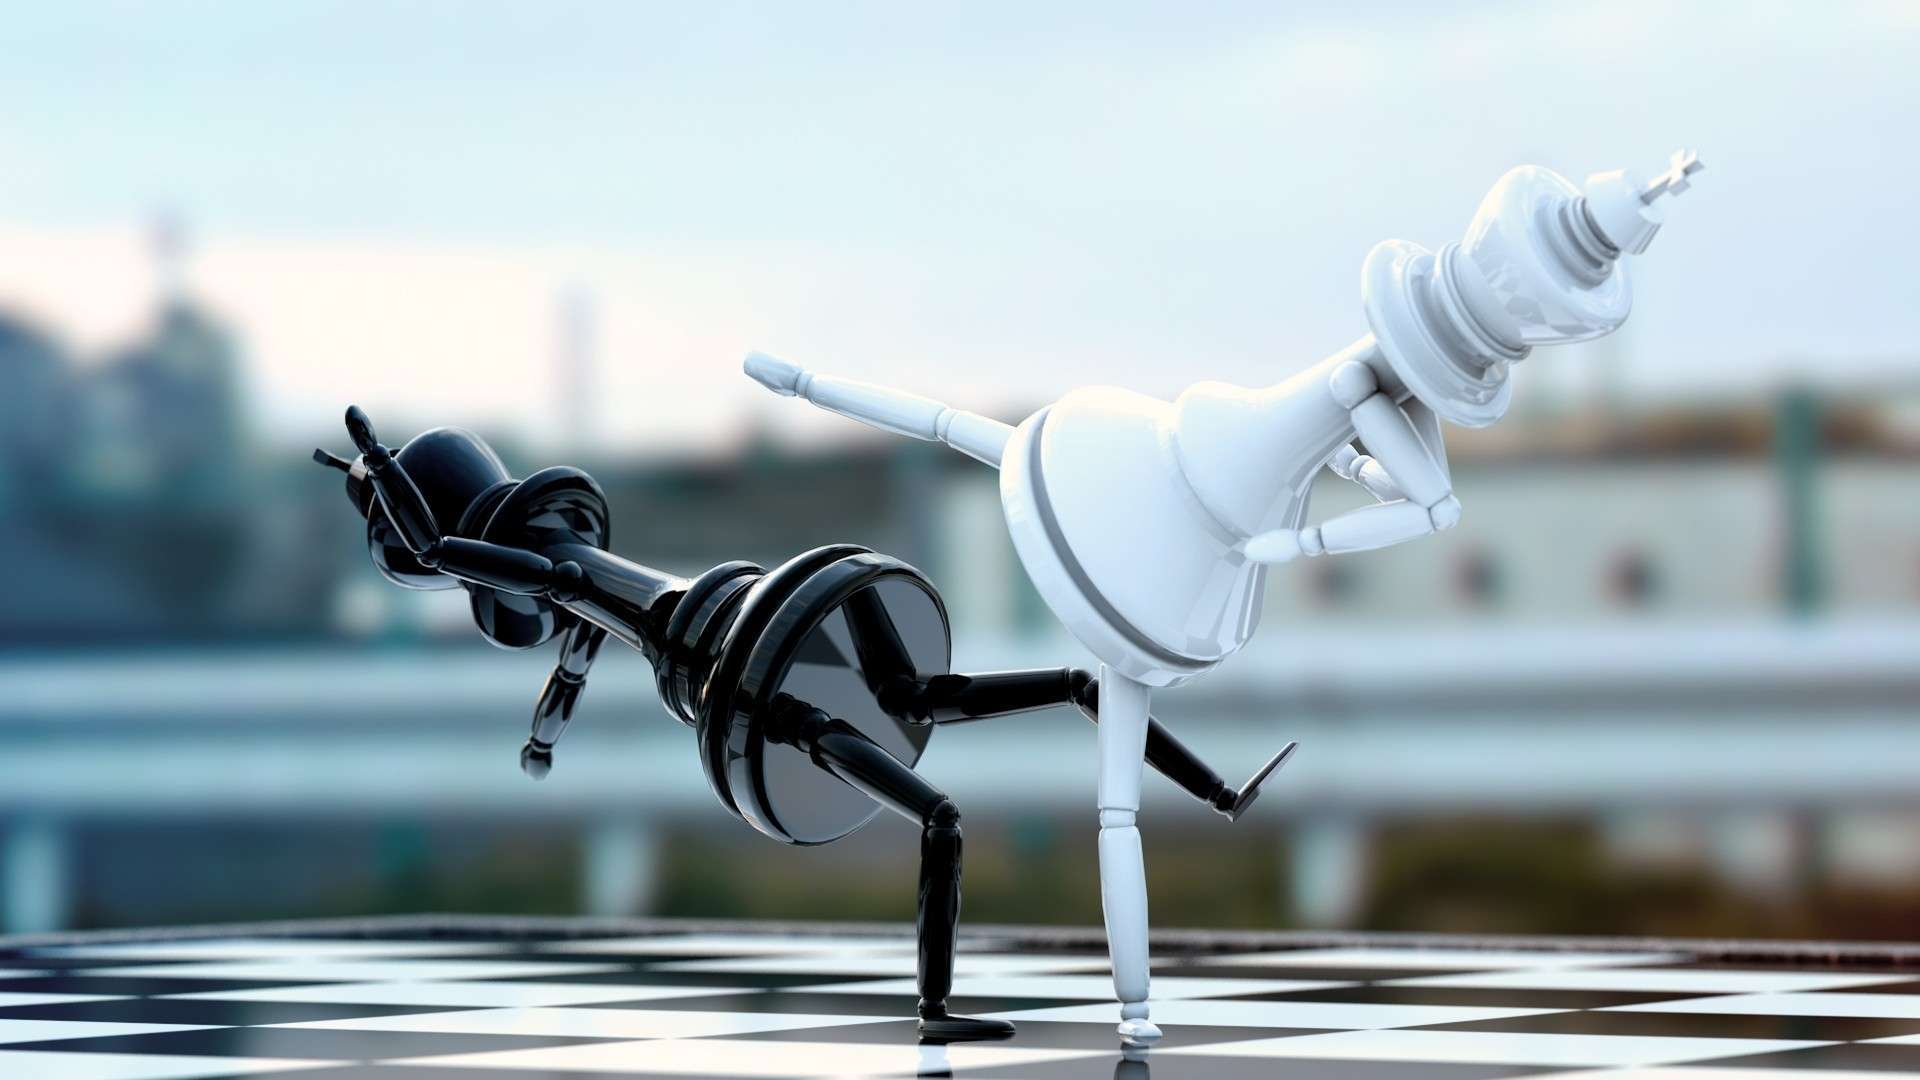 Chess-Pieces-Fighting-Board-Hd-1080p-wallpaper-wp3604035